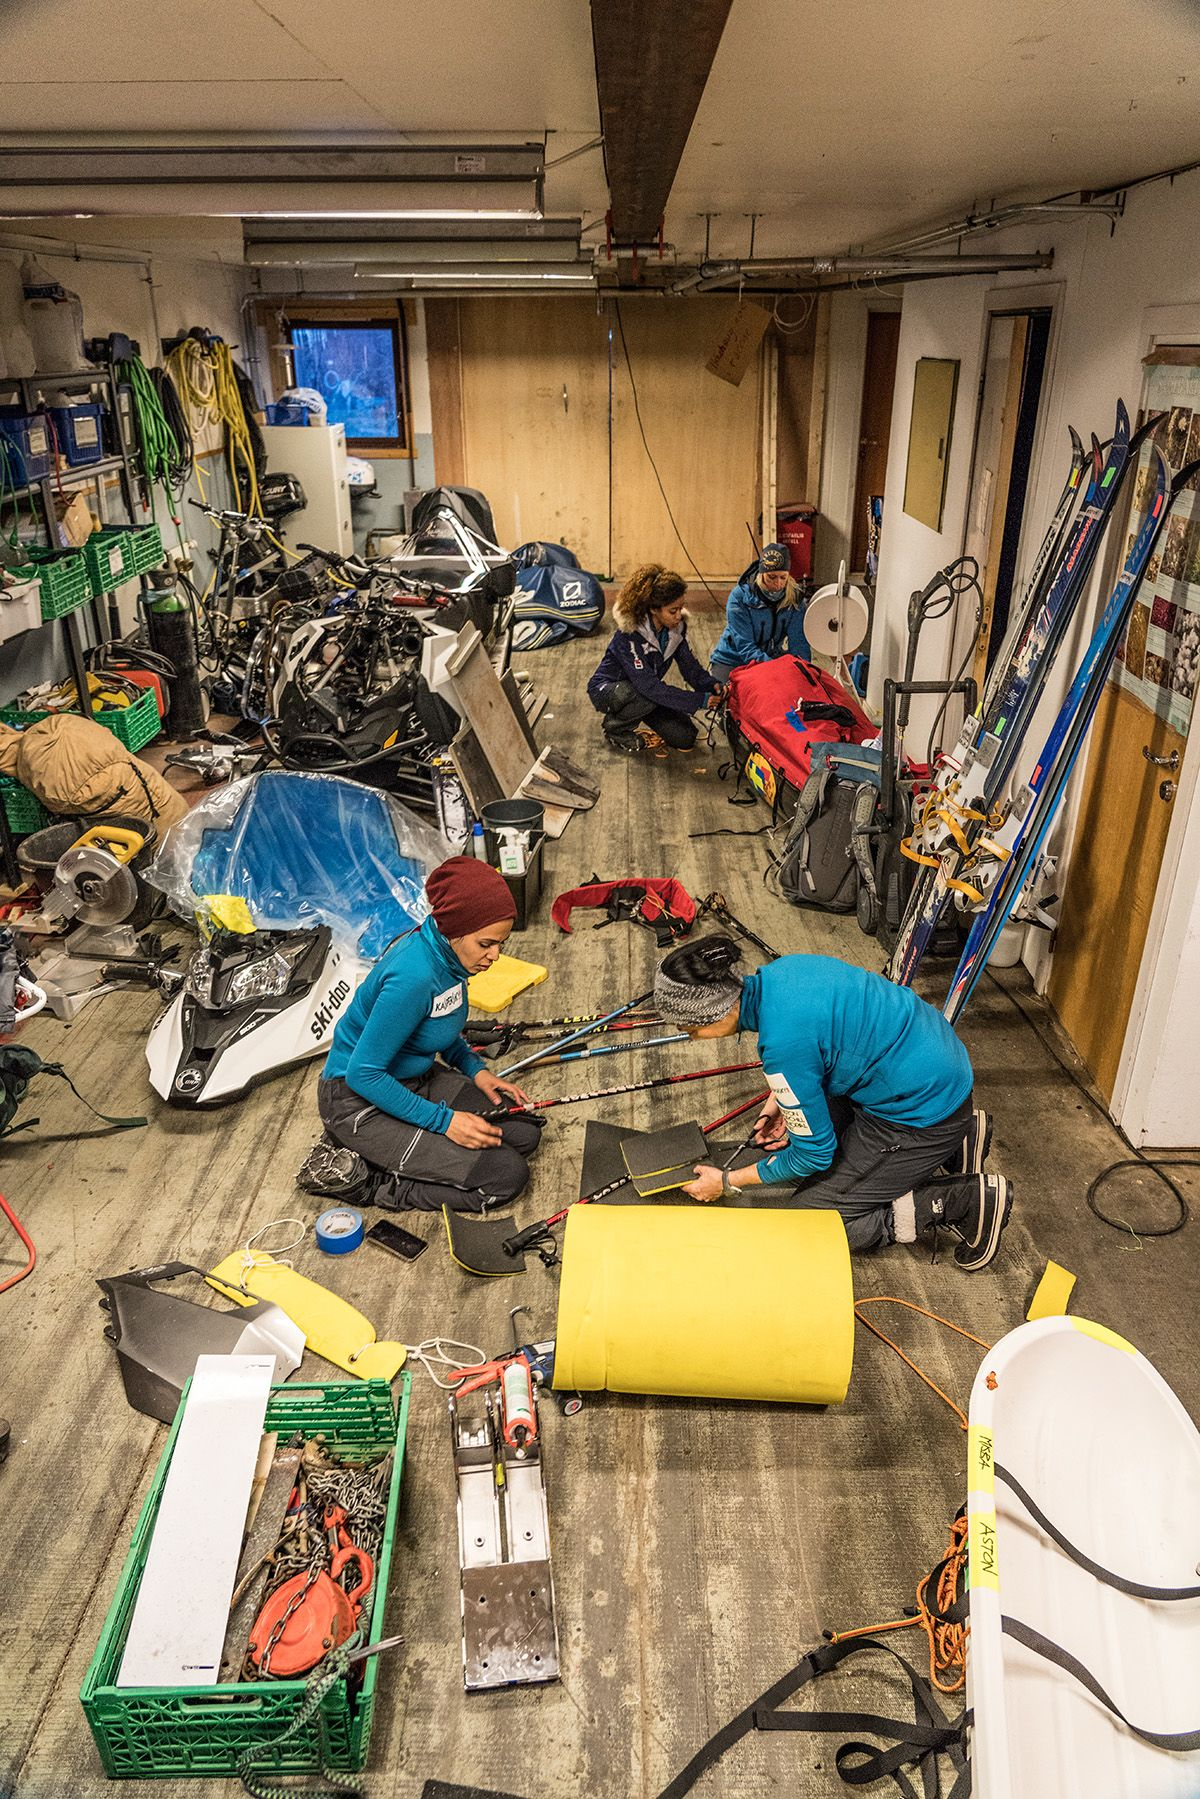 9.-Triple-checking-that-all-the-gear-is-in-working-order-and-nothing-is-forgotten-during-pre-departure-preparation-in-Svalbard-Photo-by-Renan-Ozturk